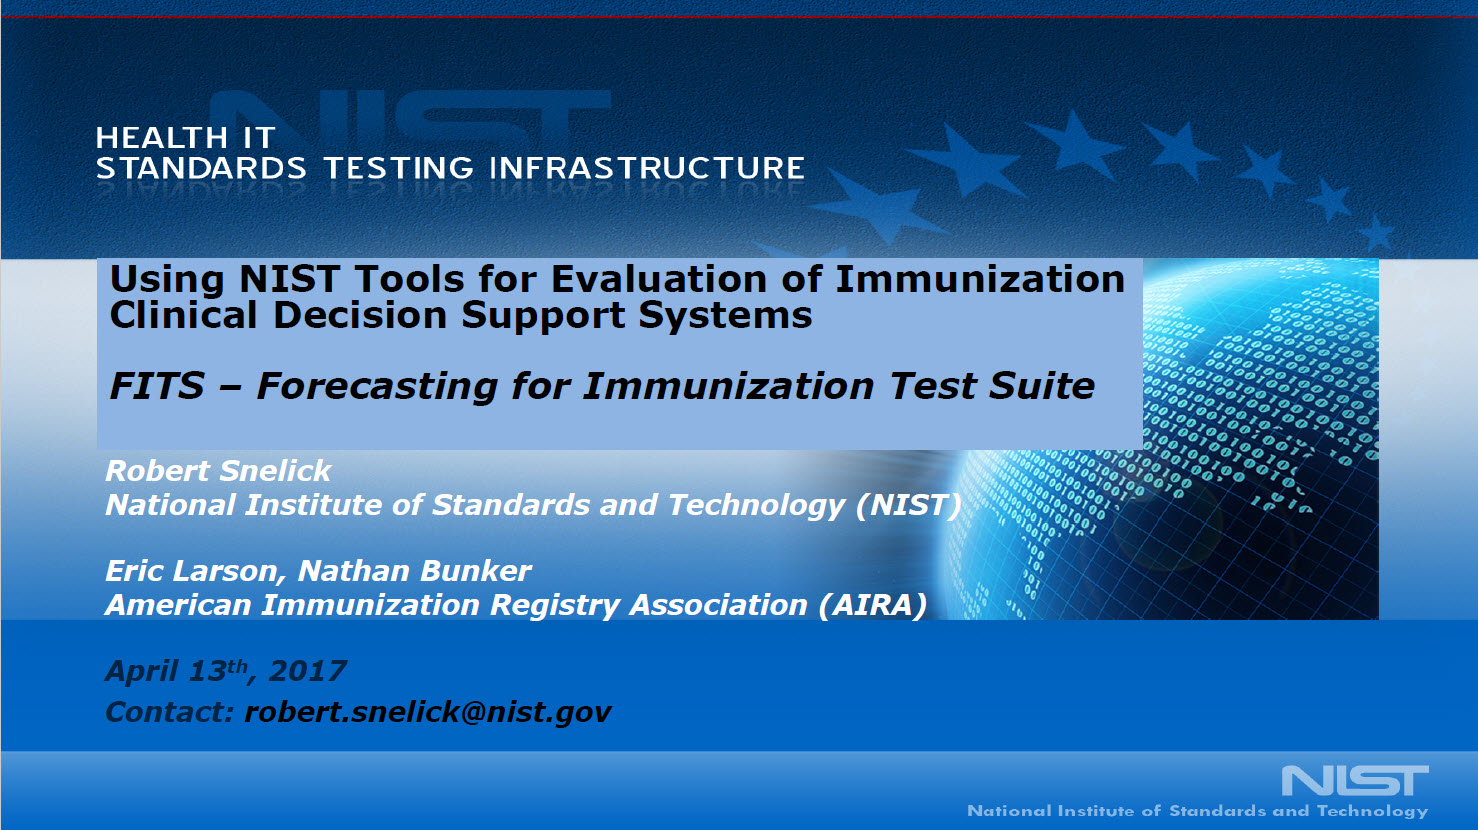 Using NIST Tools for Evaluation of Immunization CDS Systems